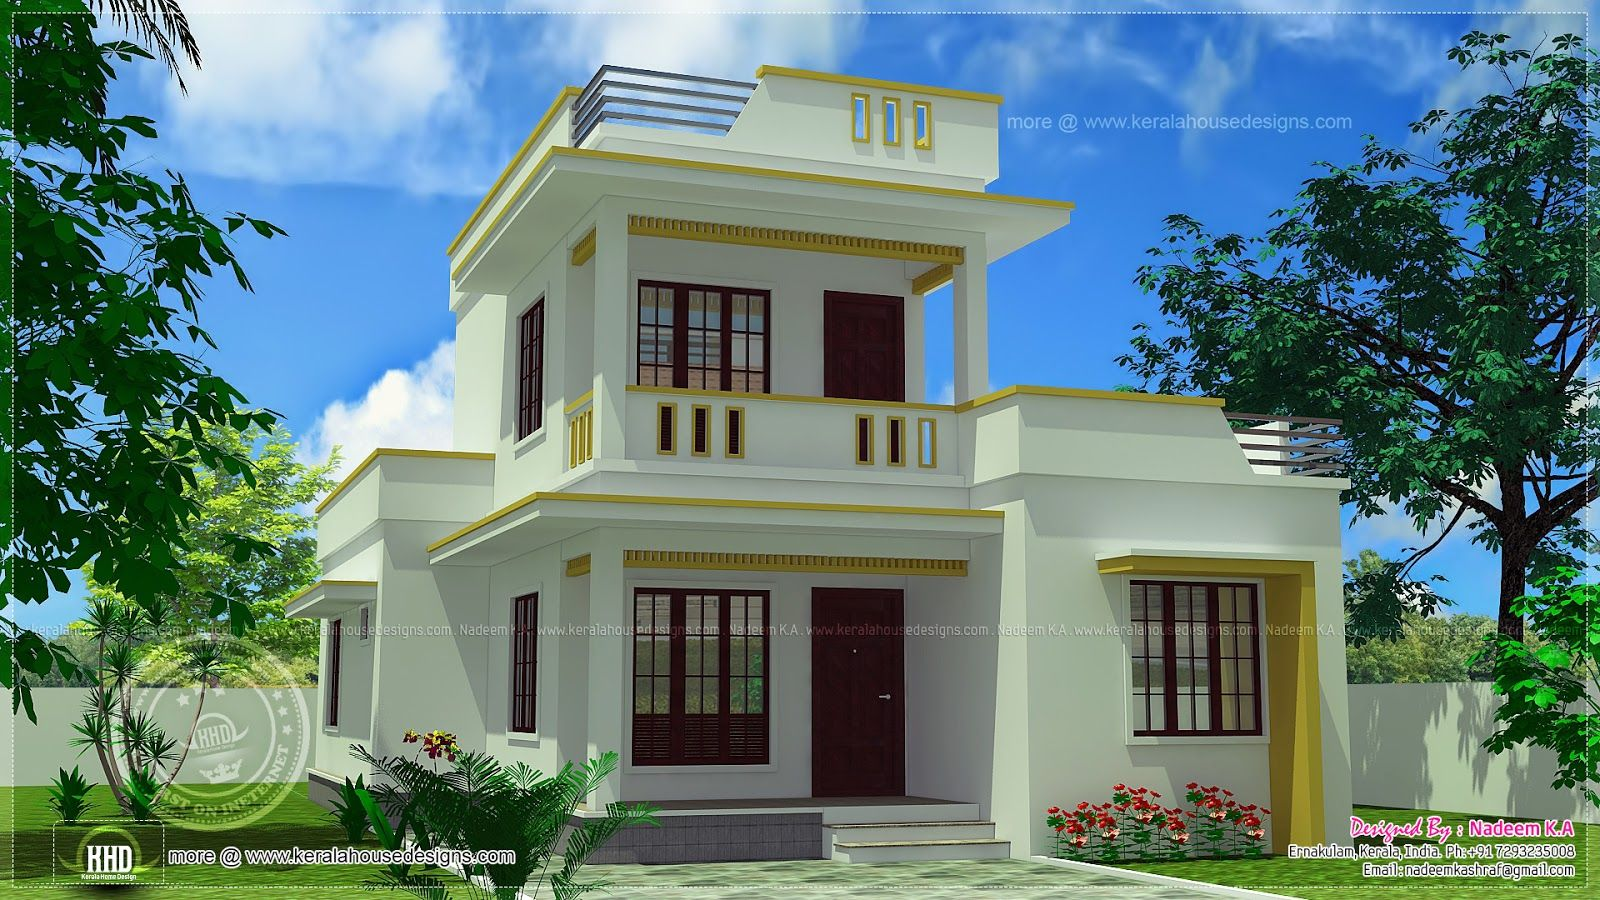 Roof home design feet kerala plans simple modern house for New house plans with pictures